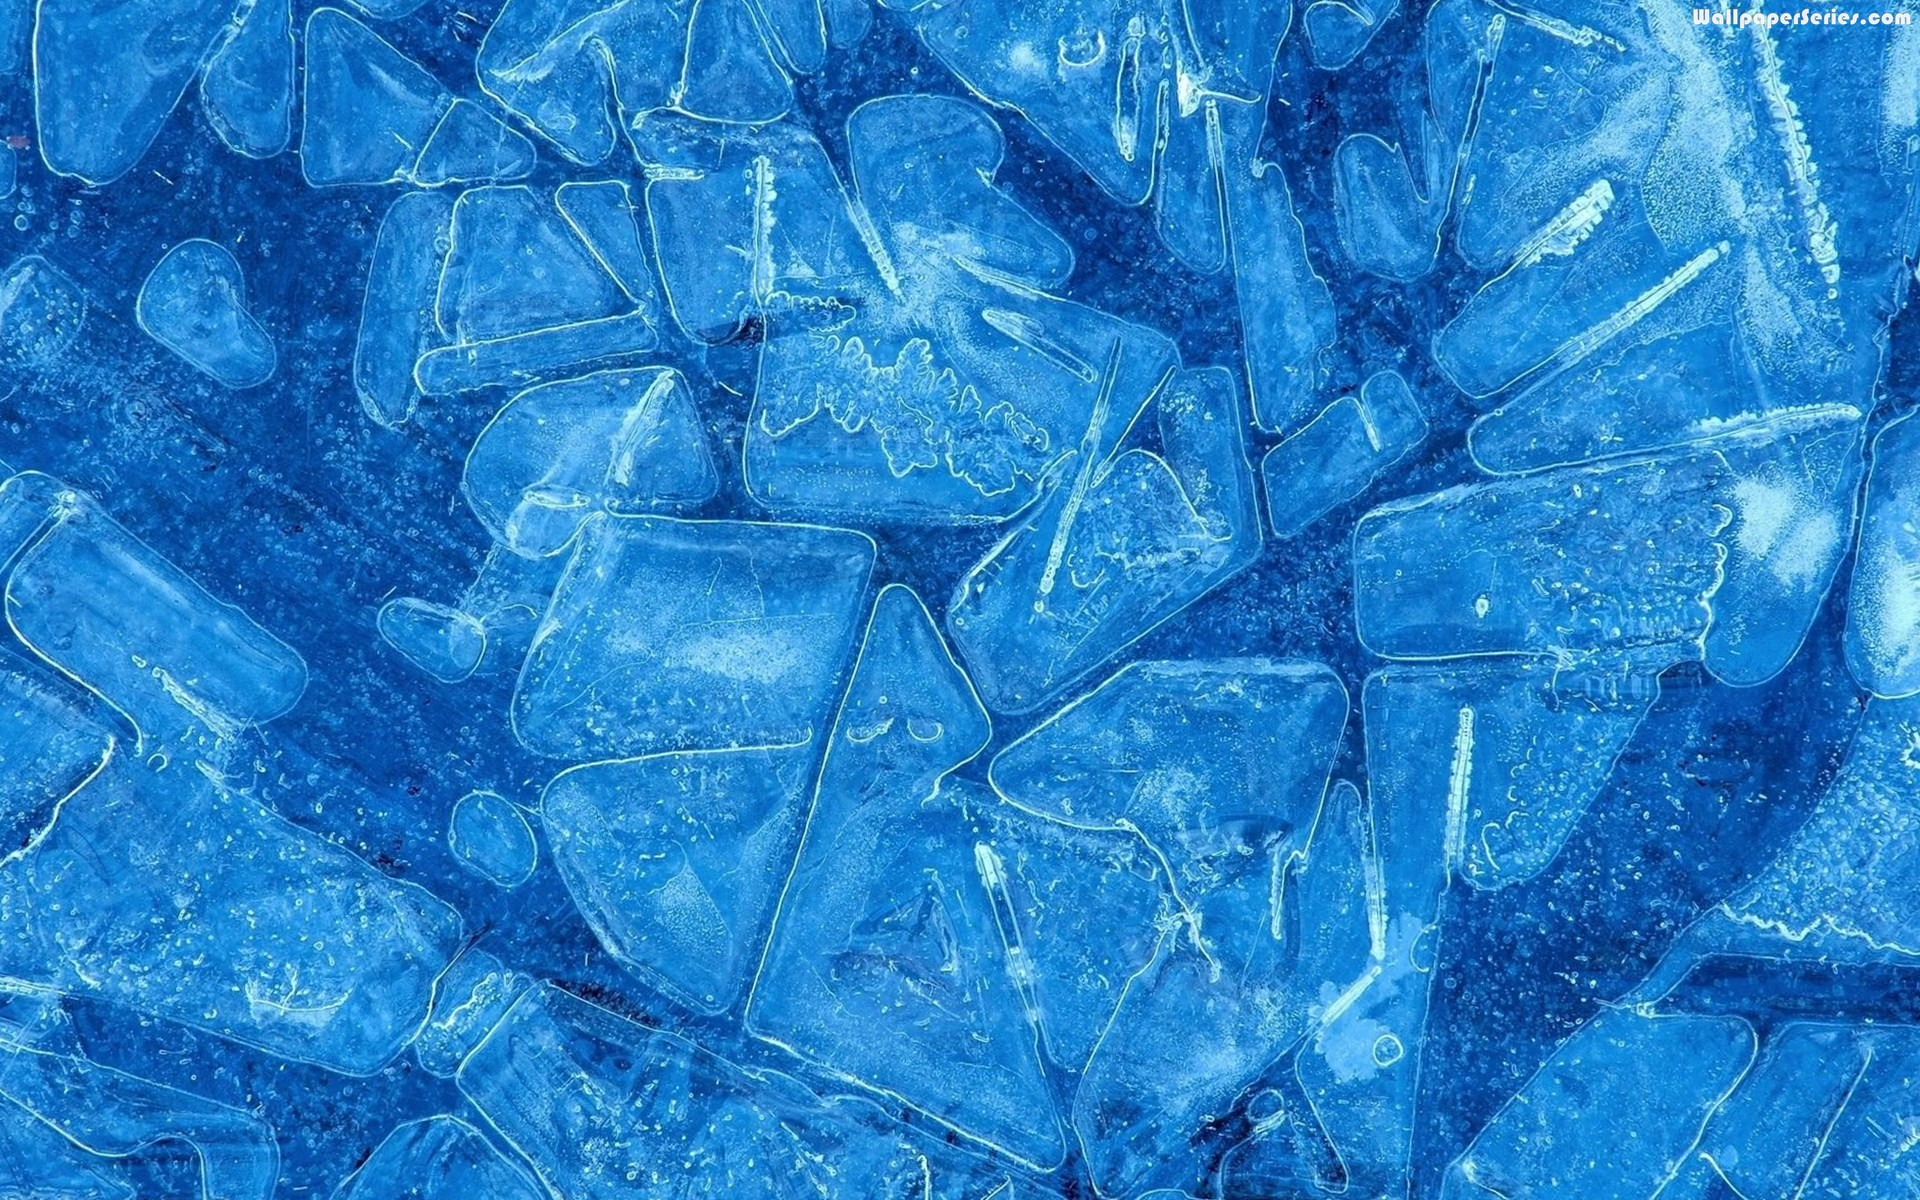 Blue Ice Textu HD Wallpaper, Background Images